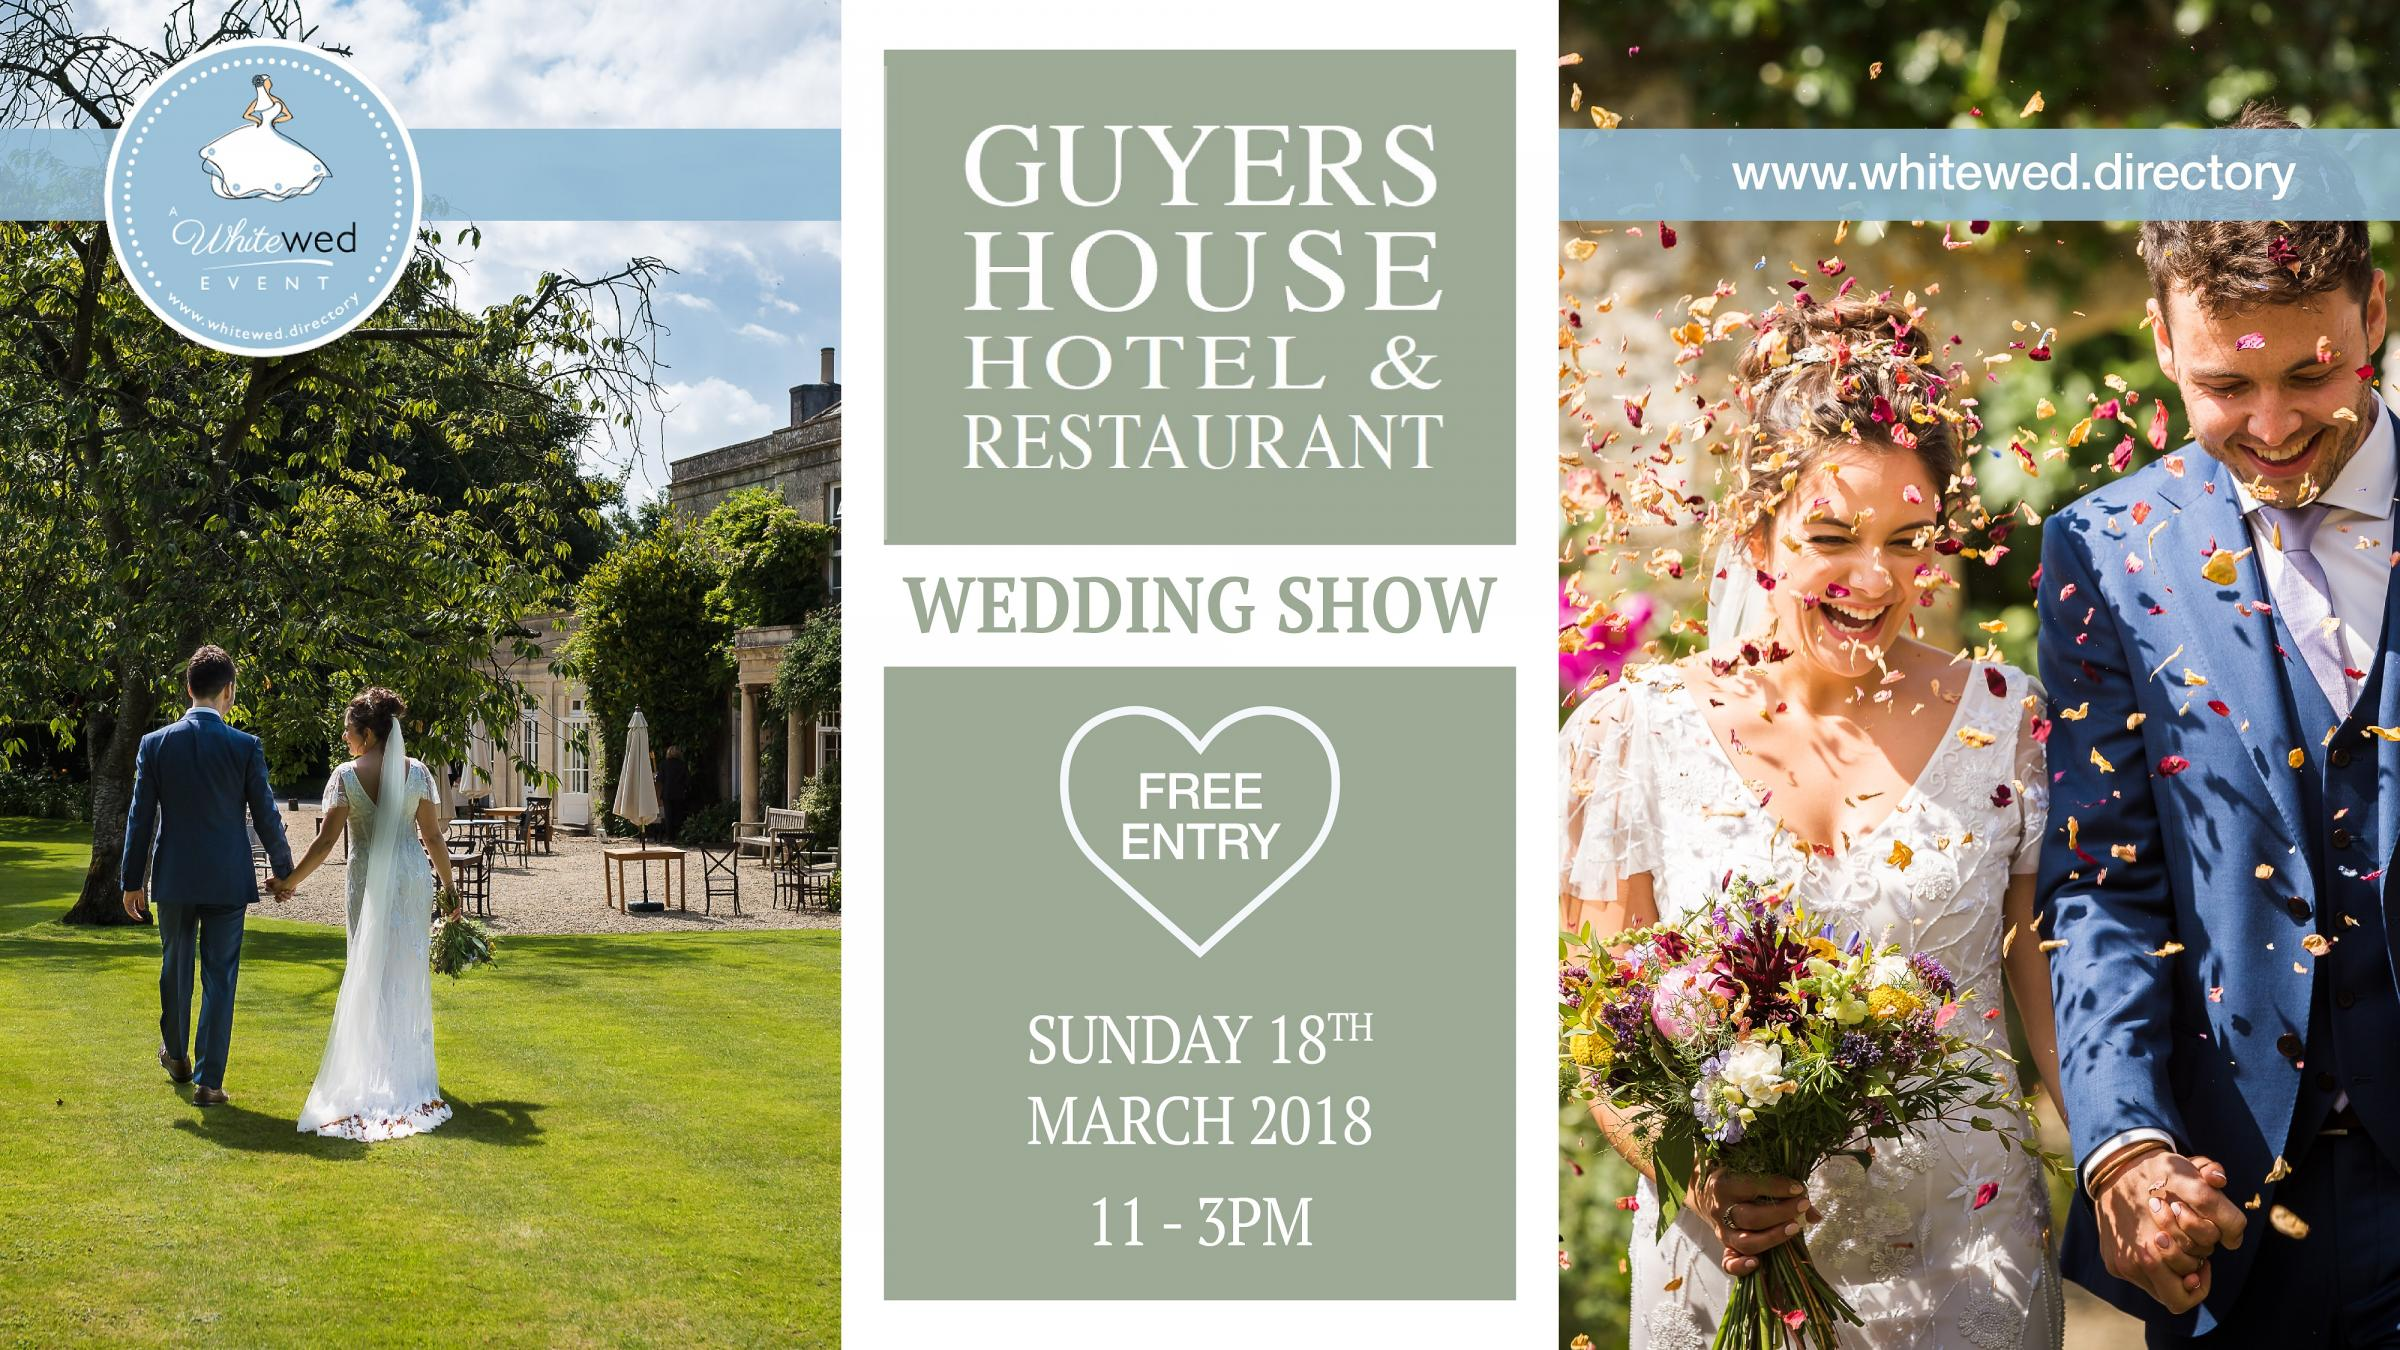 The Guyers House Wedding Show